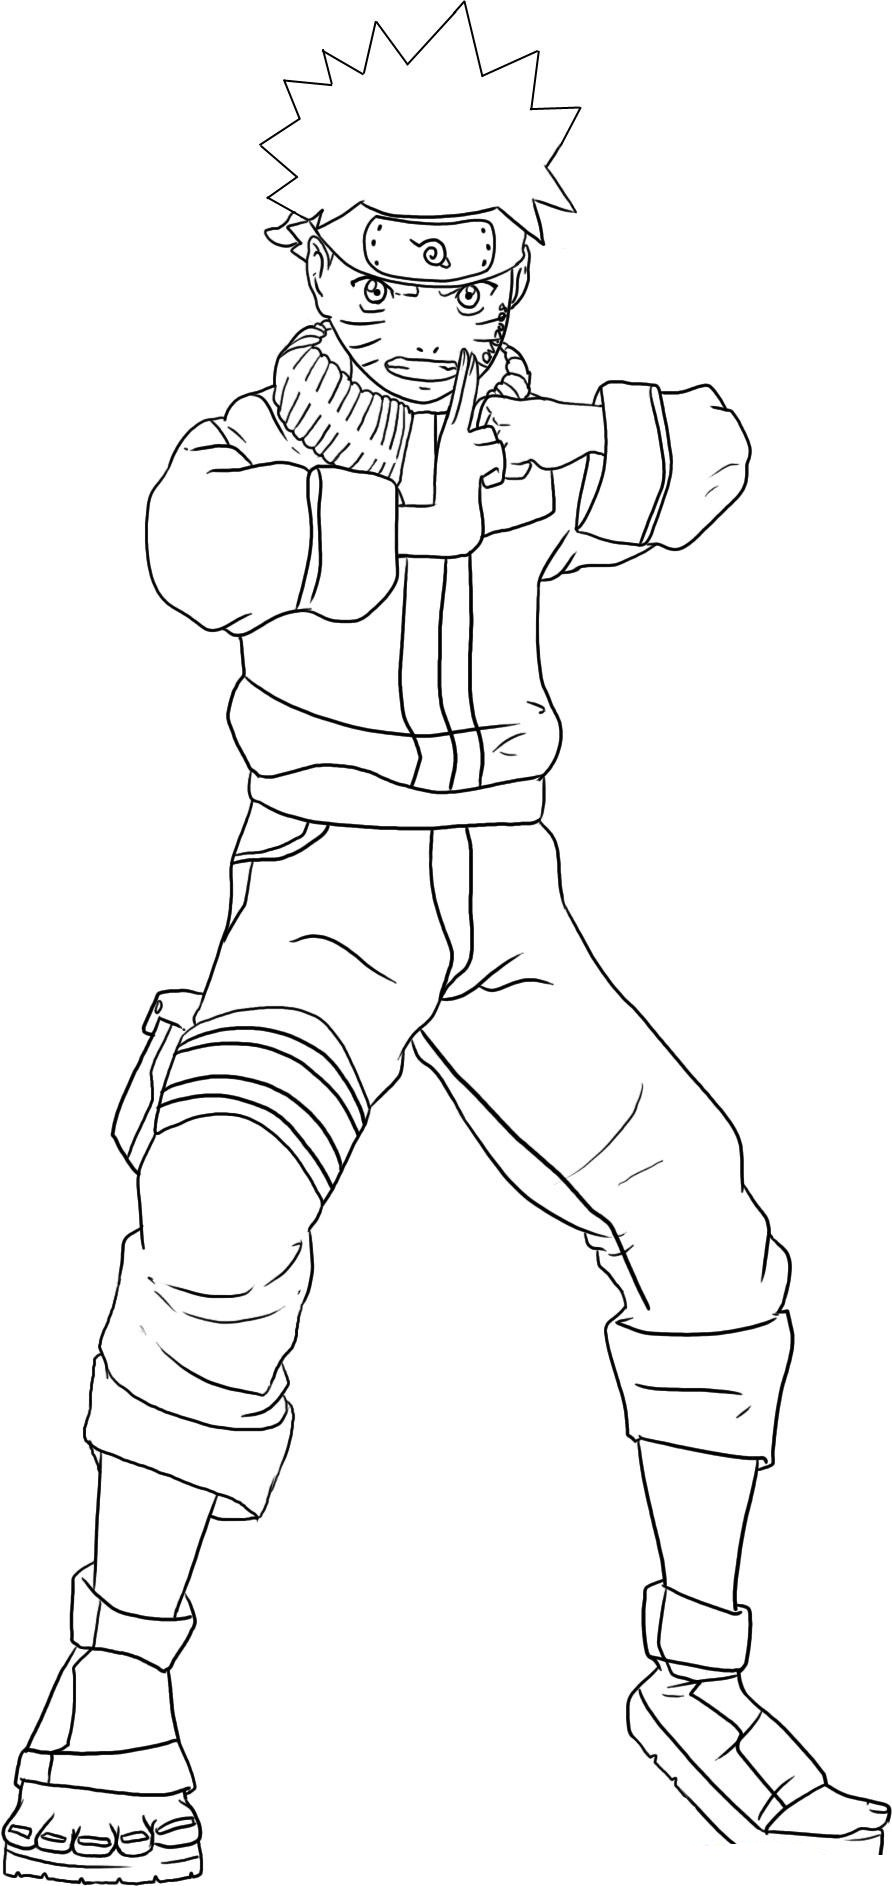 coloring pictures naruto printable naruto coloring pages to get your kids occupied naruto coloring pictures 1 1